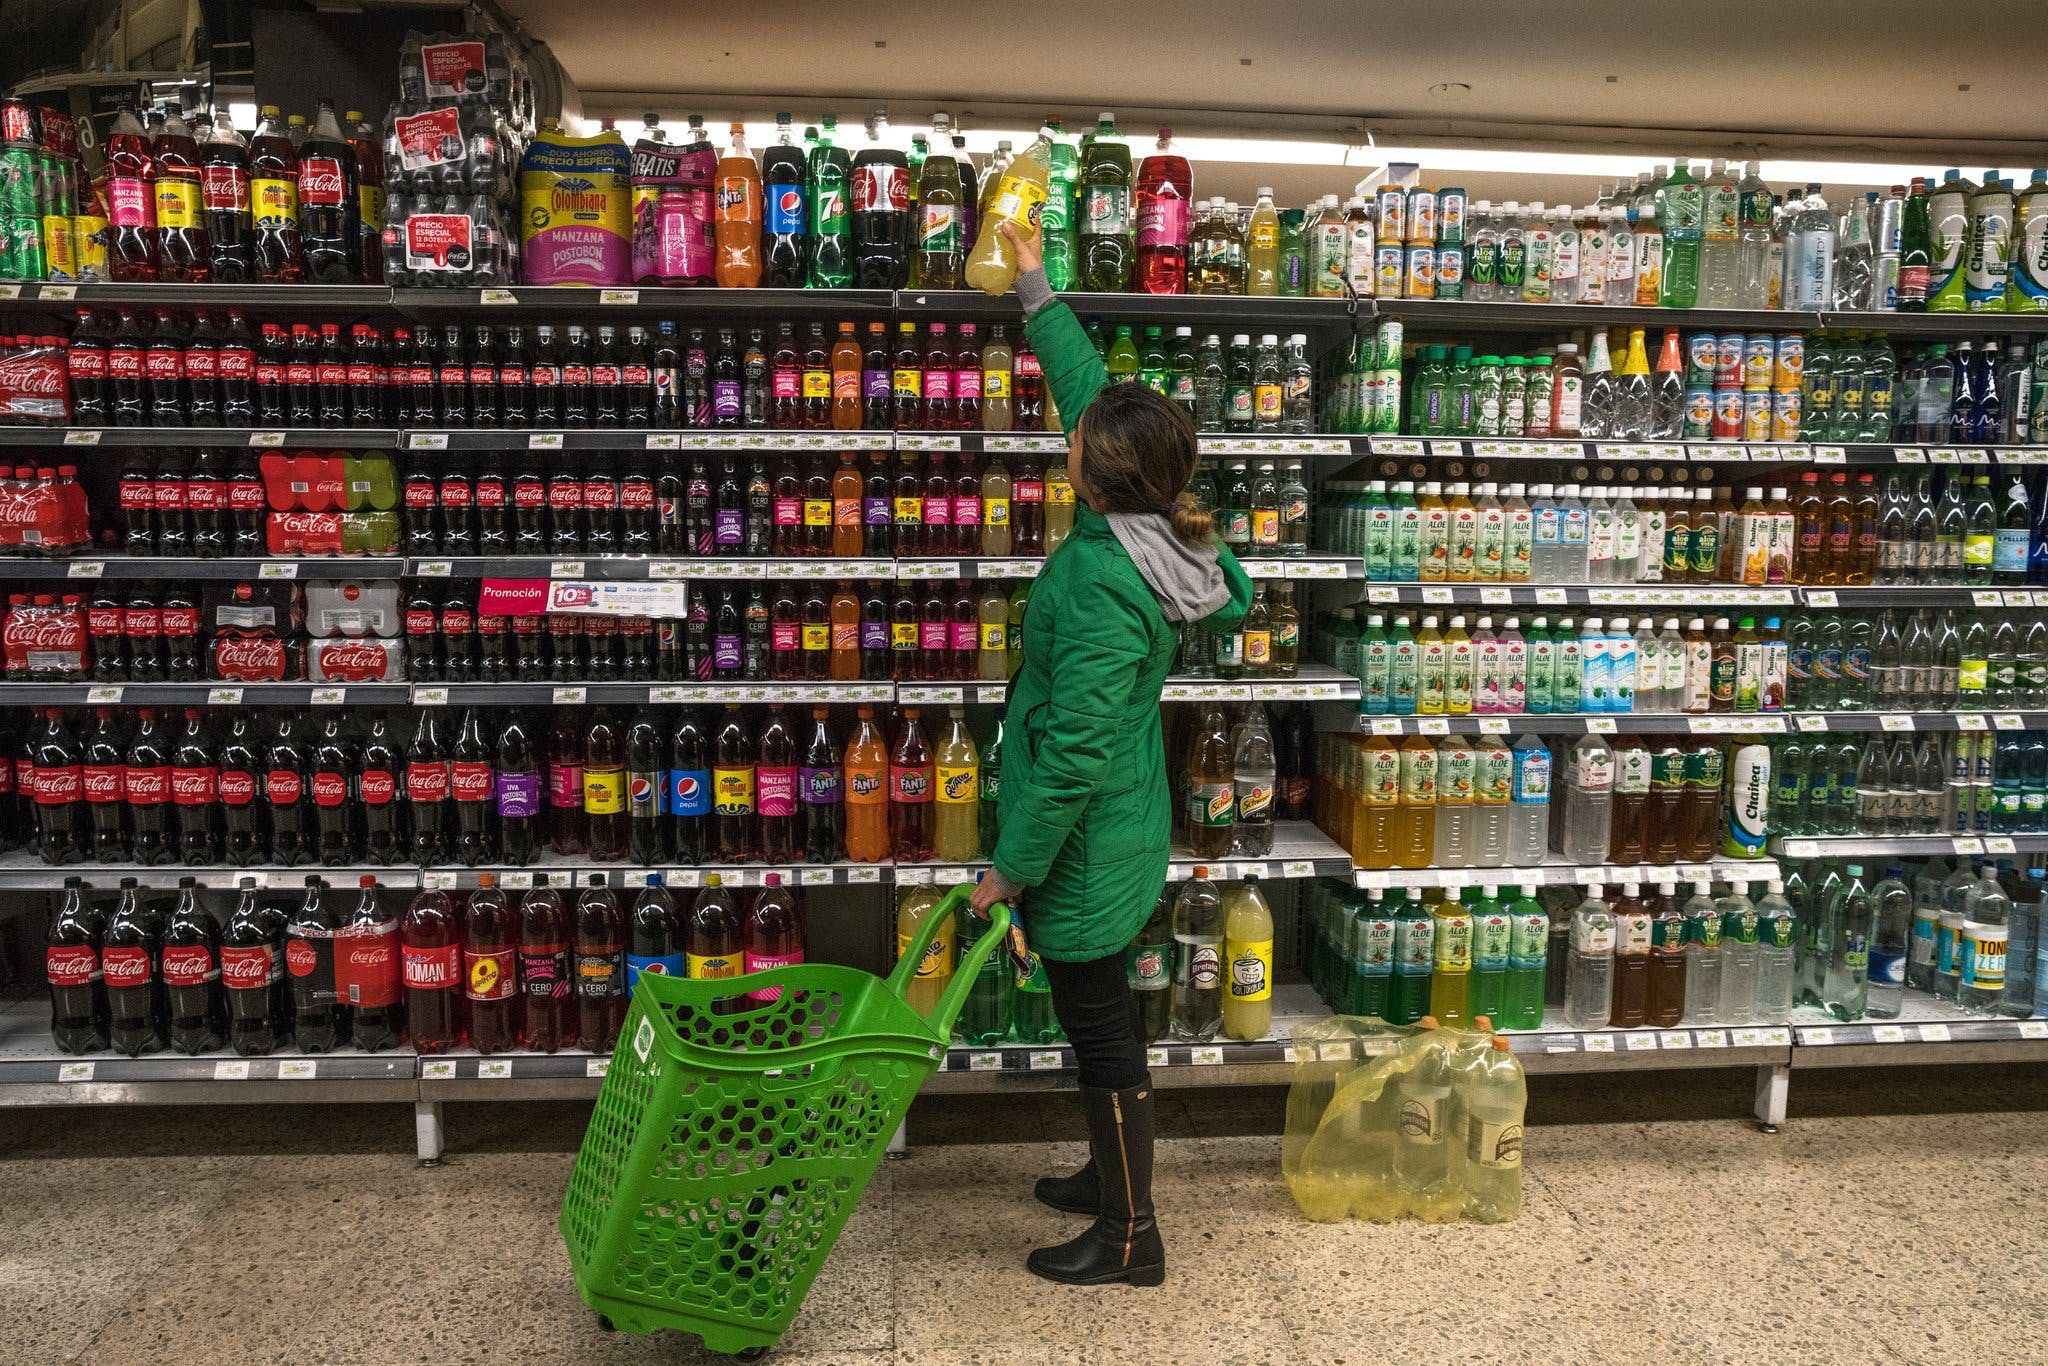 The Colombian soda industry silences an anti-sugar campaigner